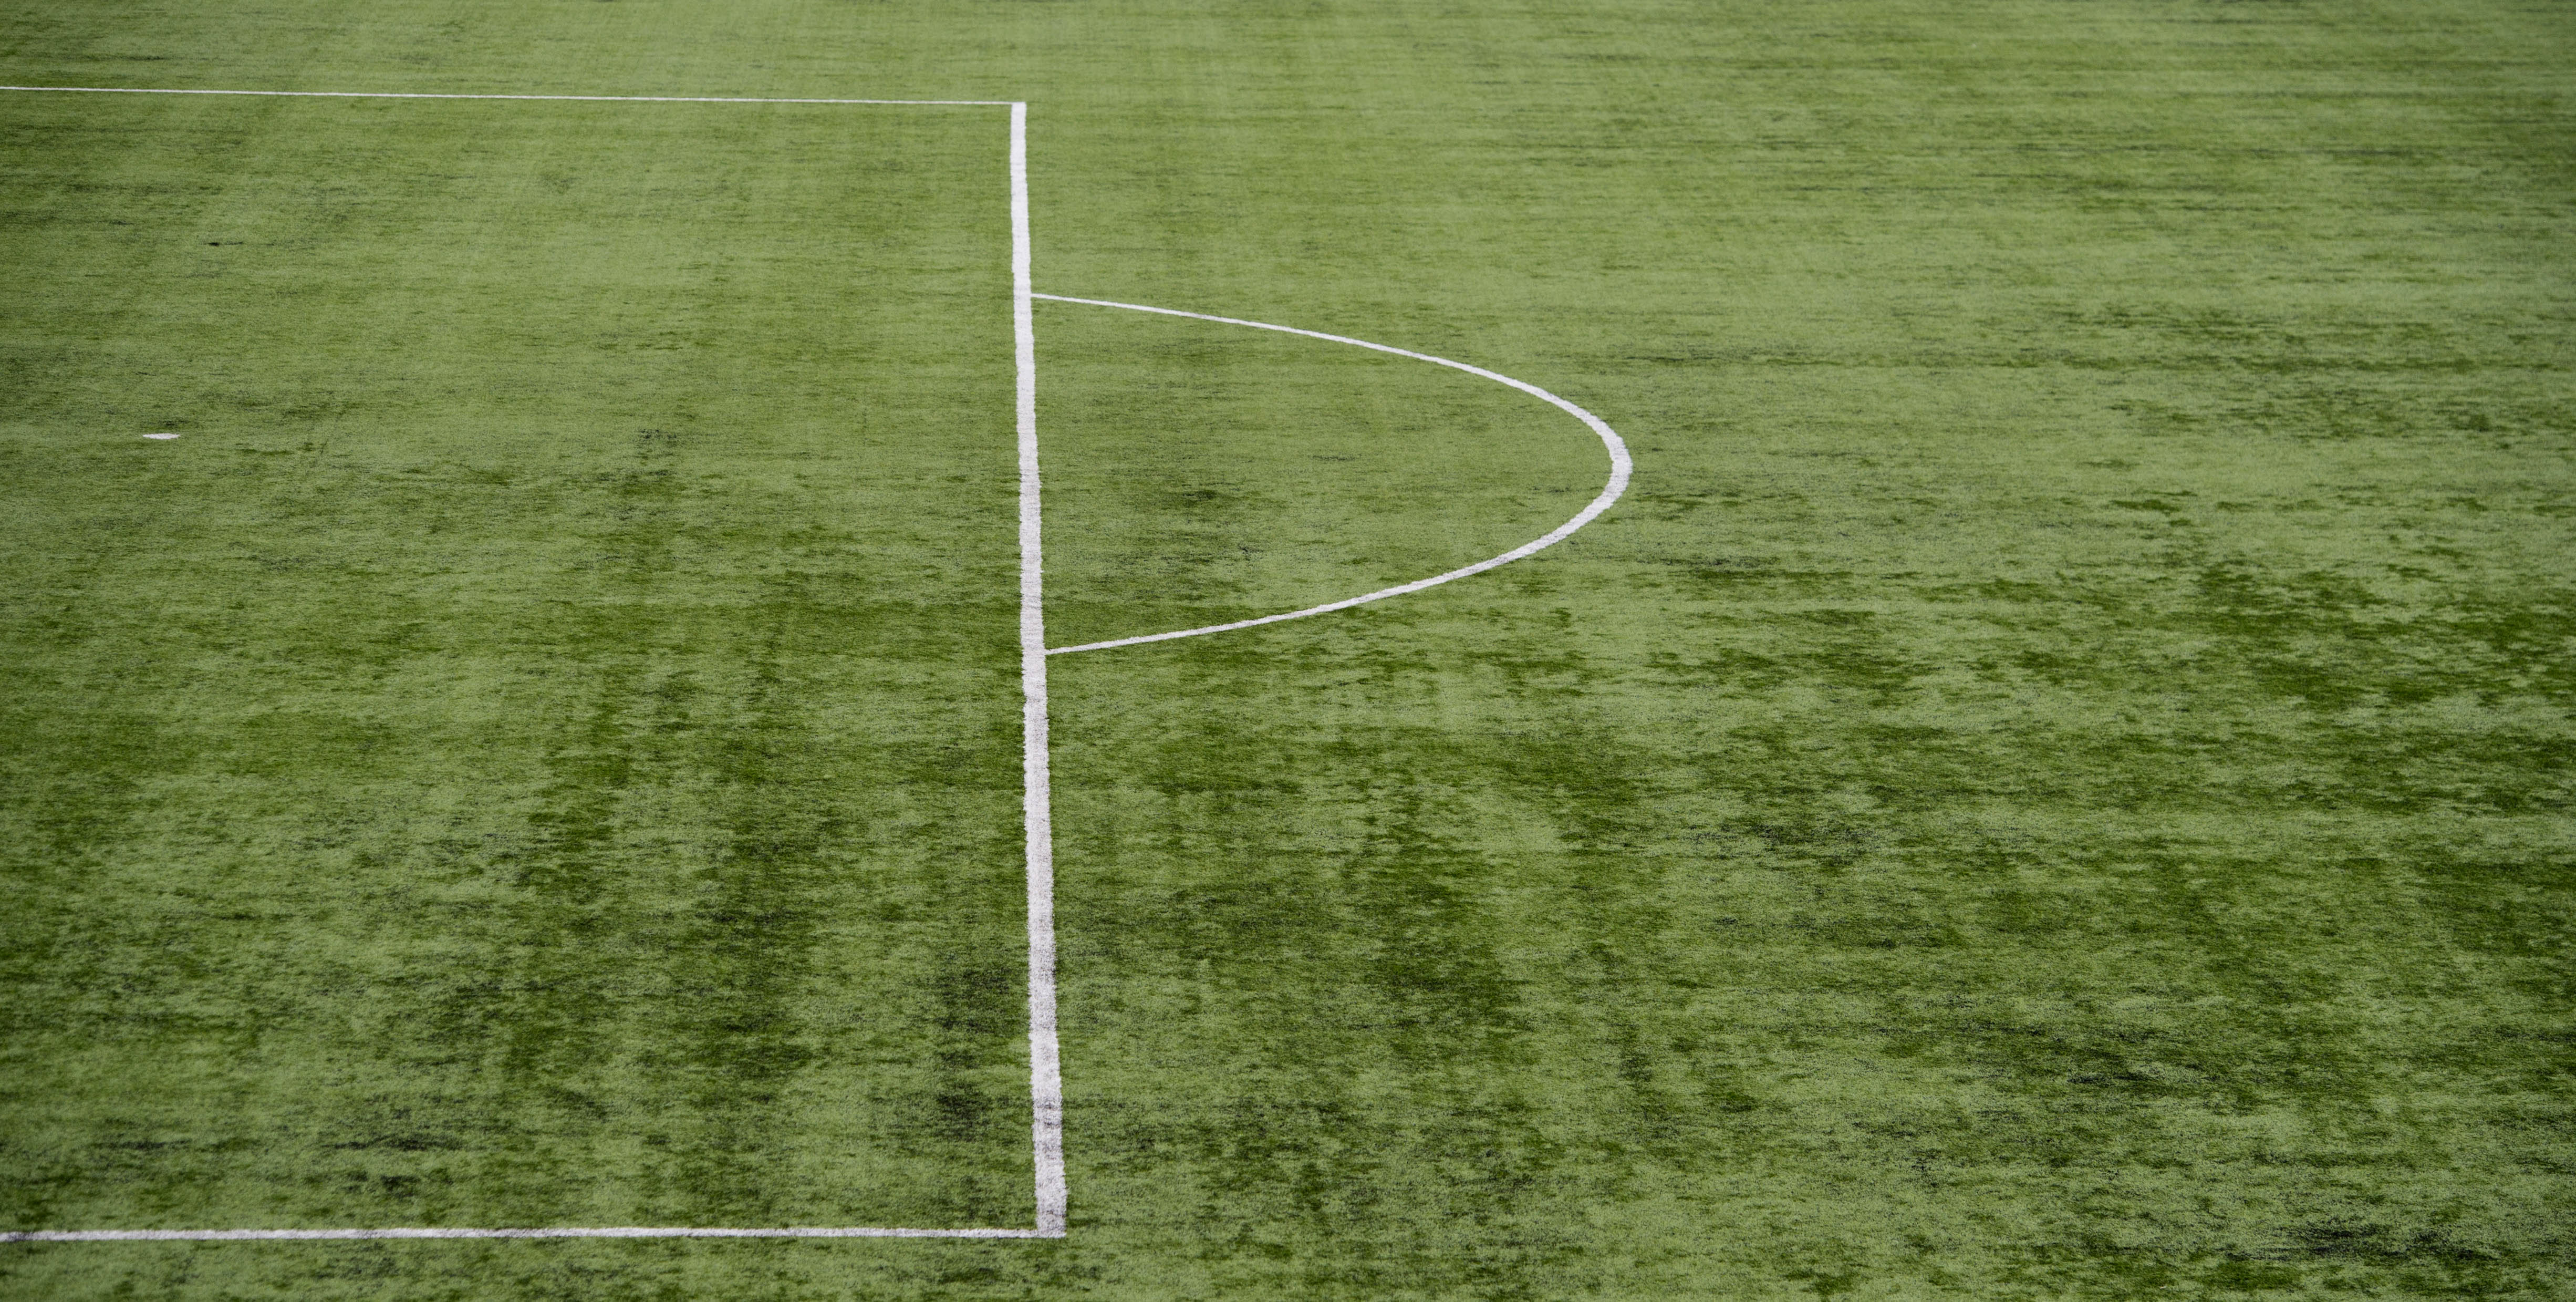 A general view of the astroturf pitch at Hamilton